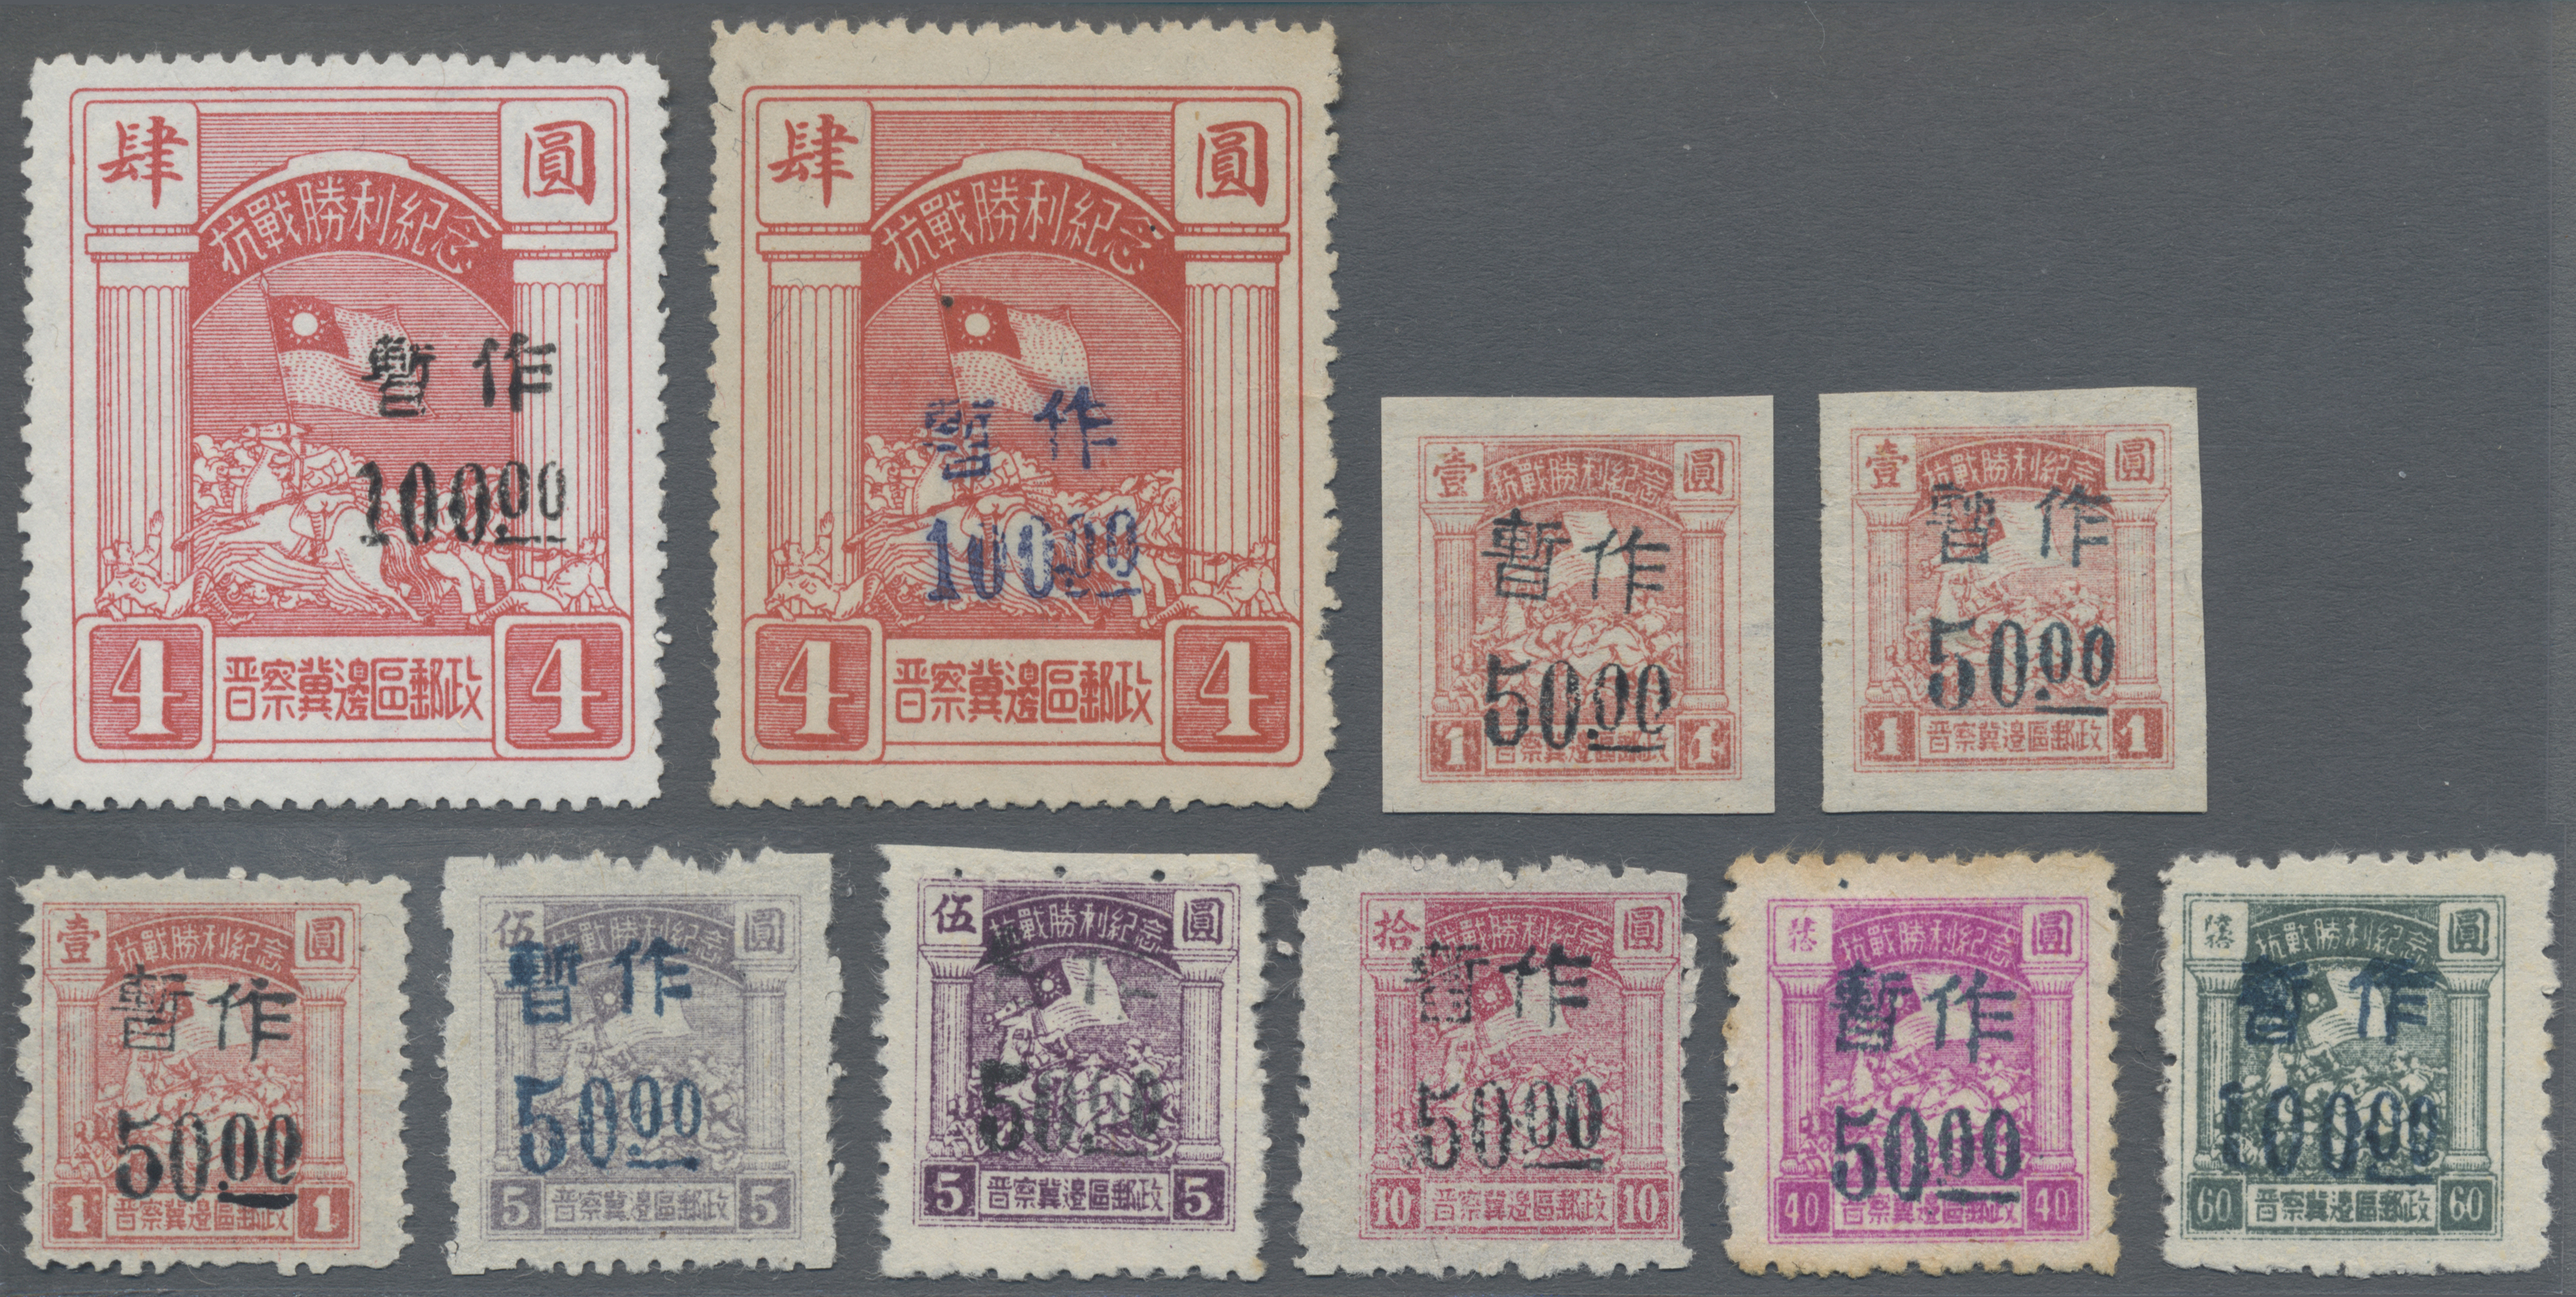 Lot 05008 - China - Volksrepublik - Provinzen  -  Auktionshaus Christoph Gärtner GmbH & Co. KG Sale #46 Special Auction China - including Liberated Areas